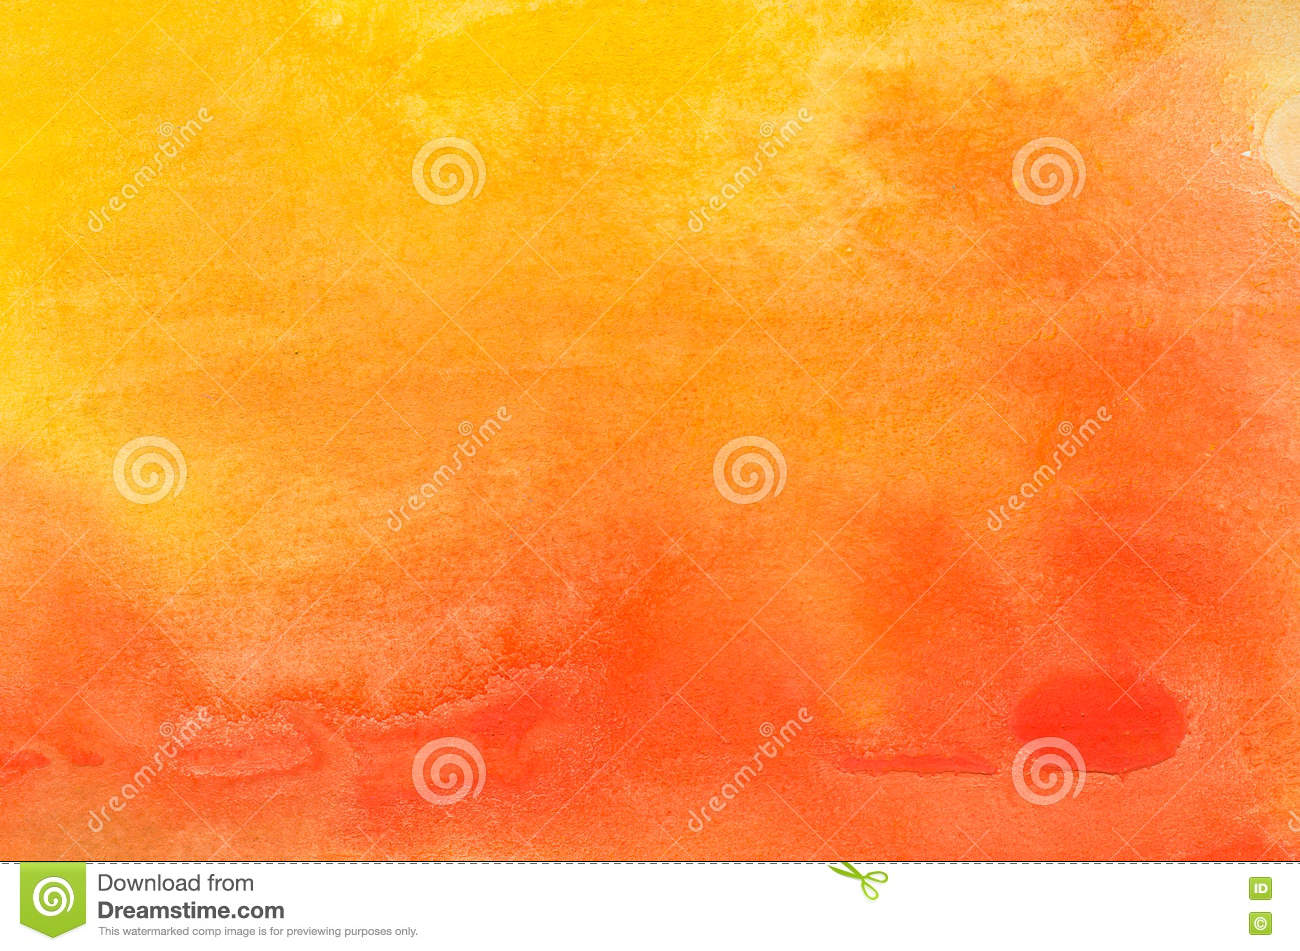 Orange watercolor painted background texture